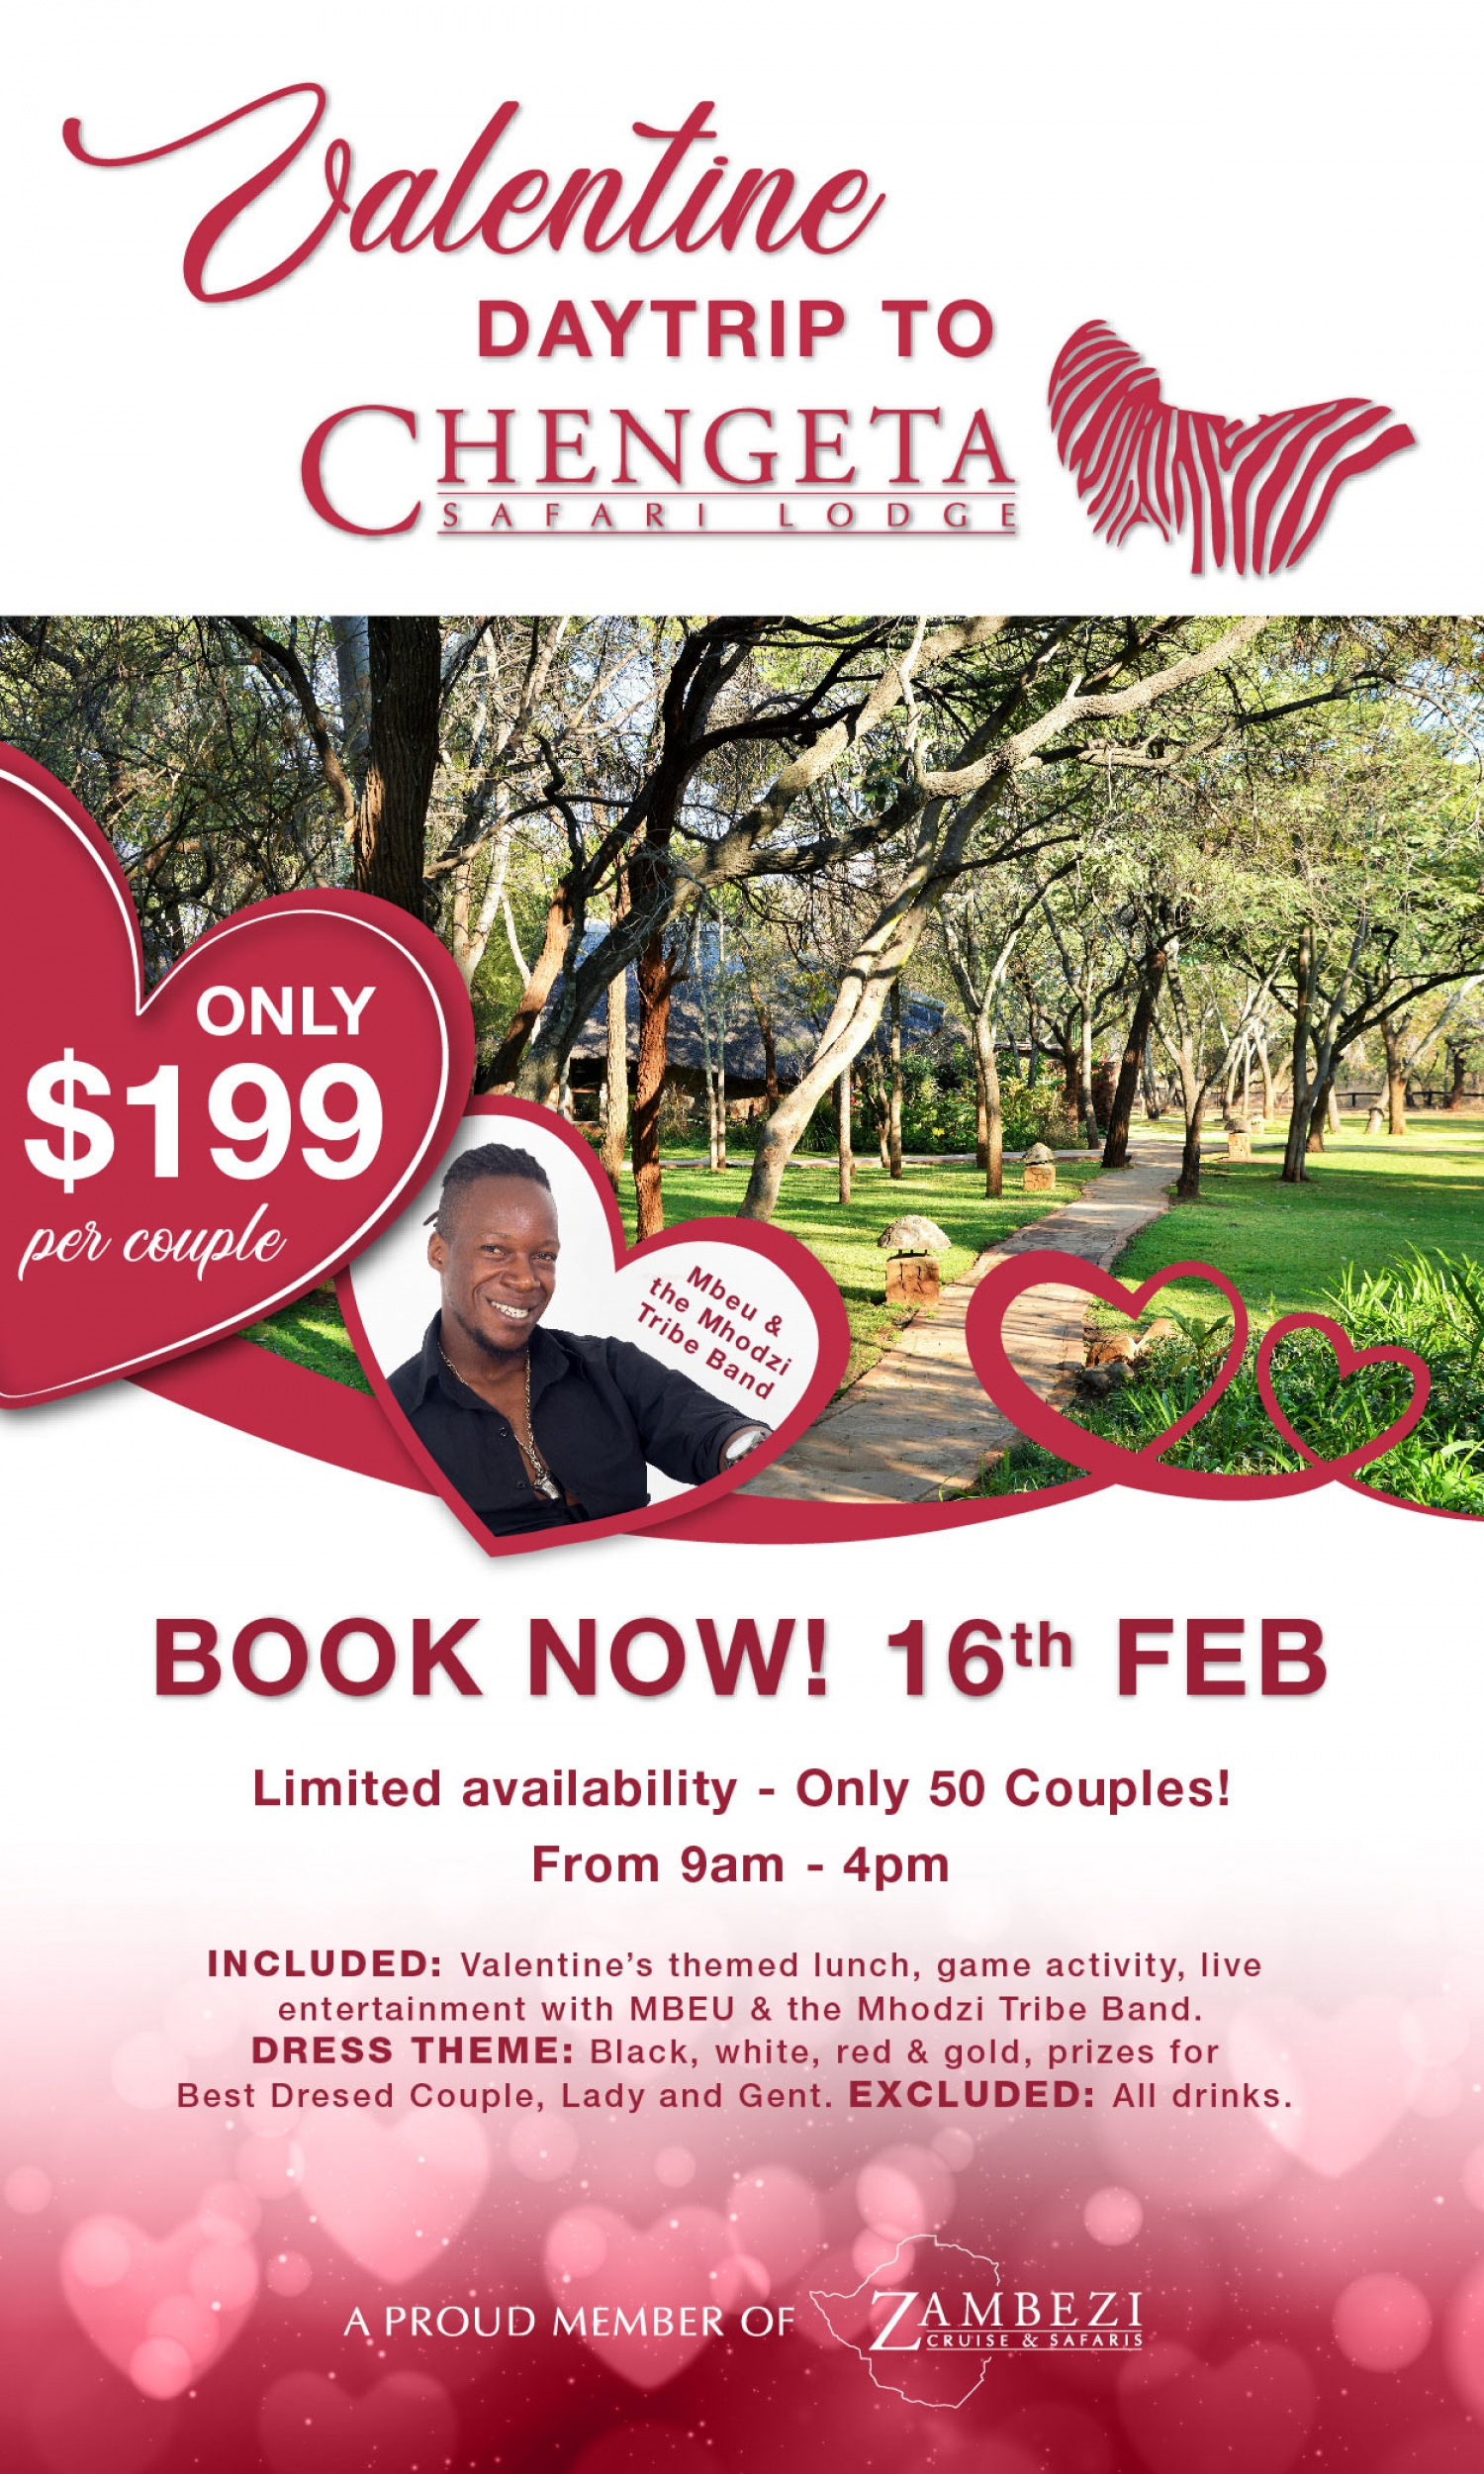 Valentine Day Trip at Chengeta Safari Lodge